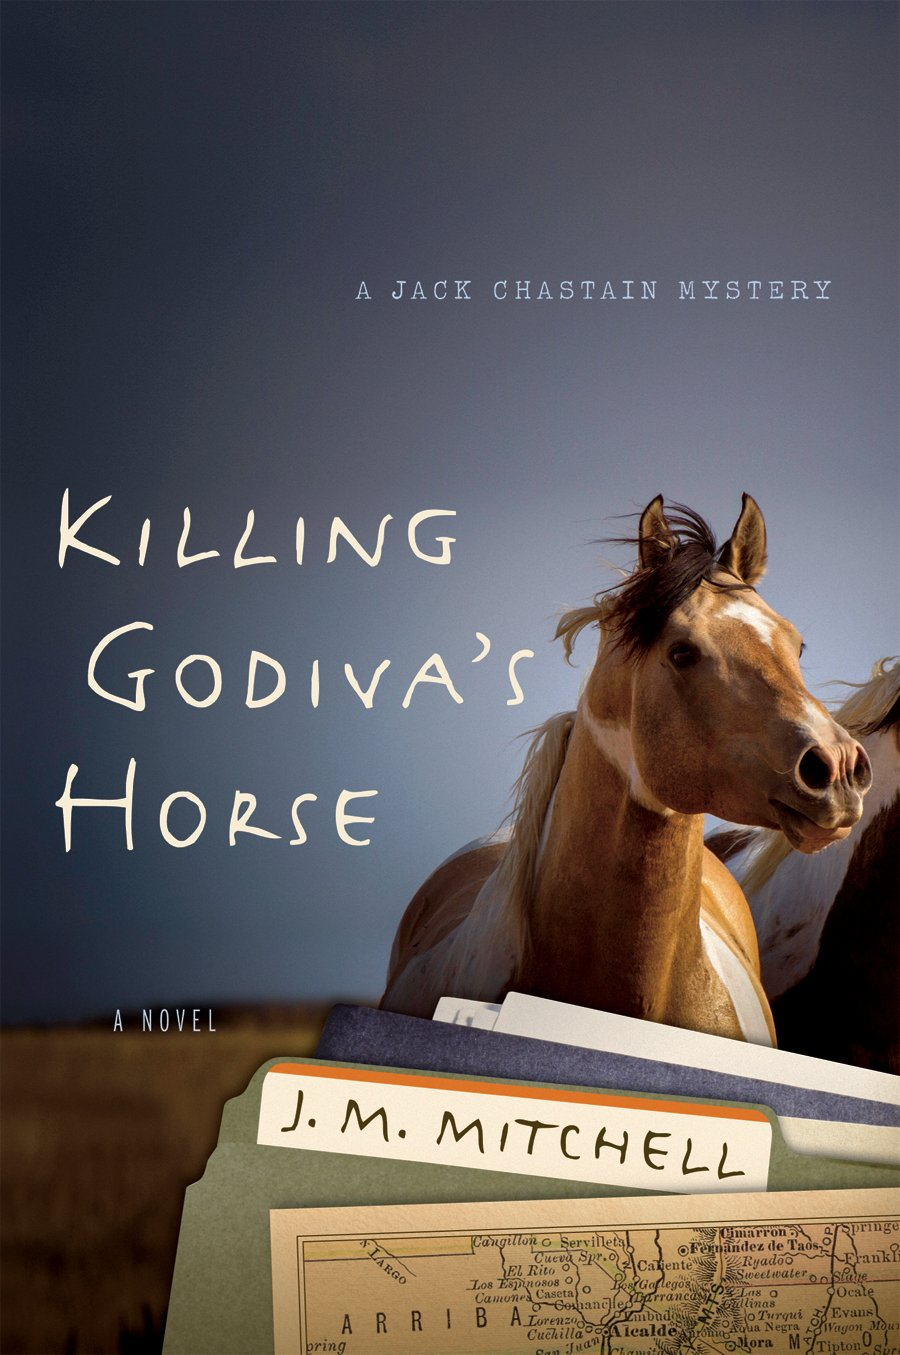 Killing Godivas Horse Paperback – August 16, 2018